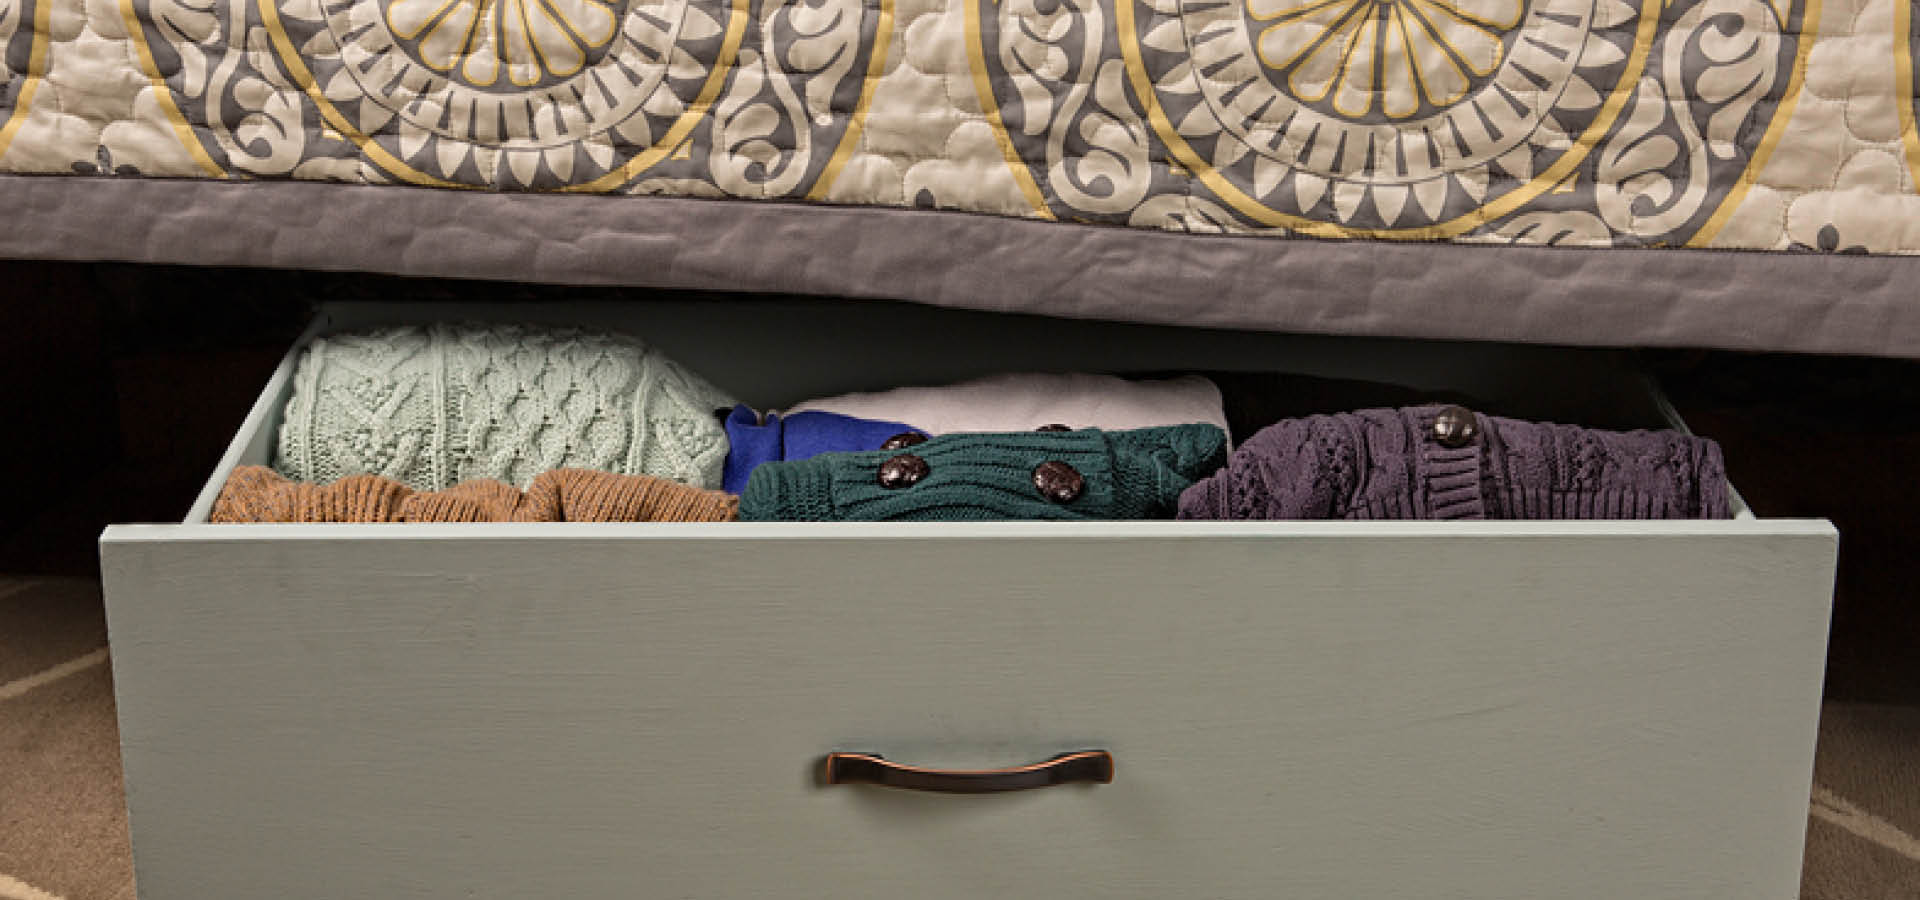 upcycled-drawer-under-bed-storage